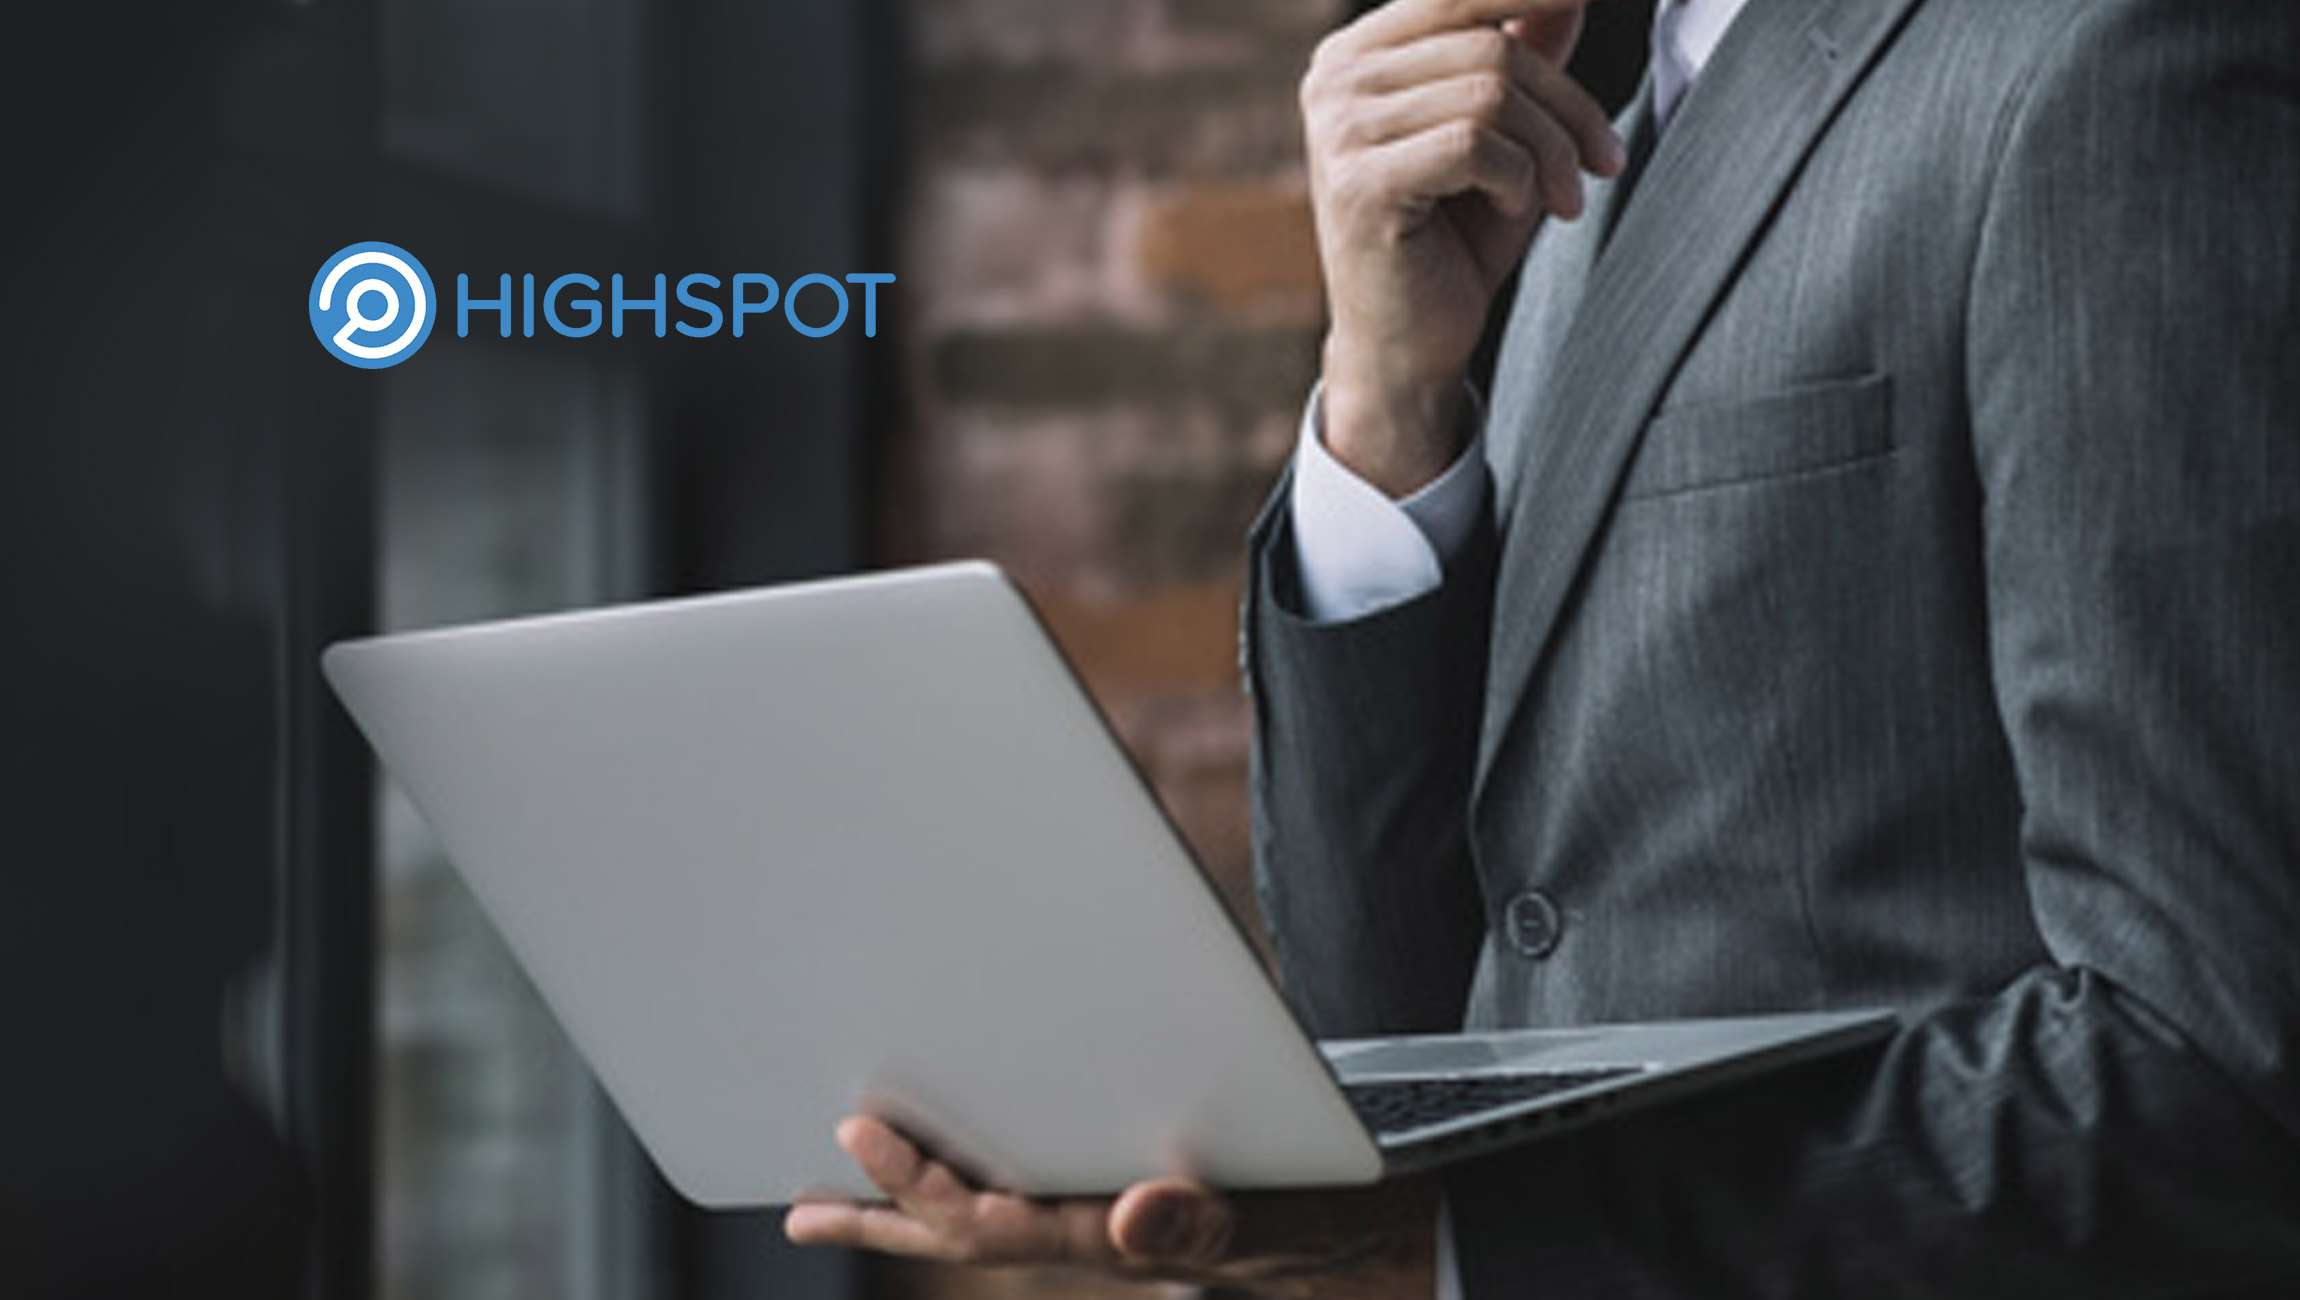 Highspot Named a Leader in Sales Content Solutions